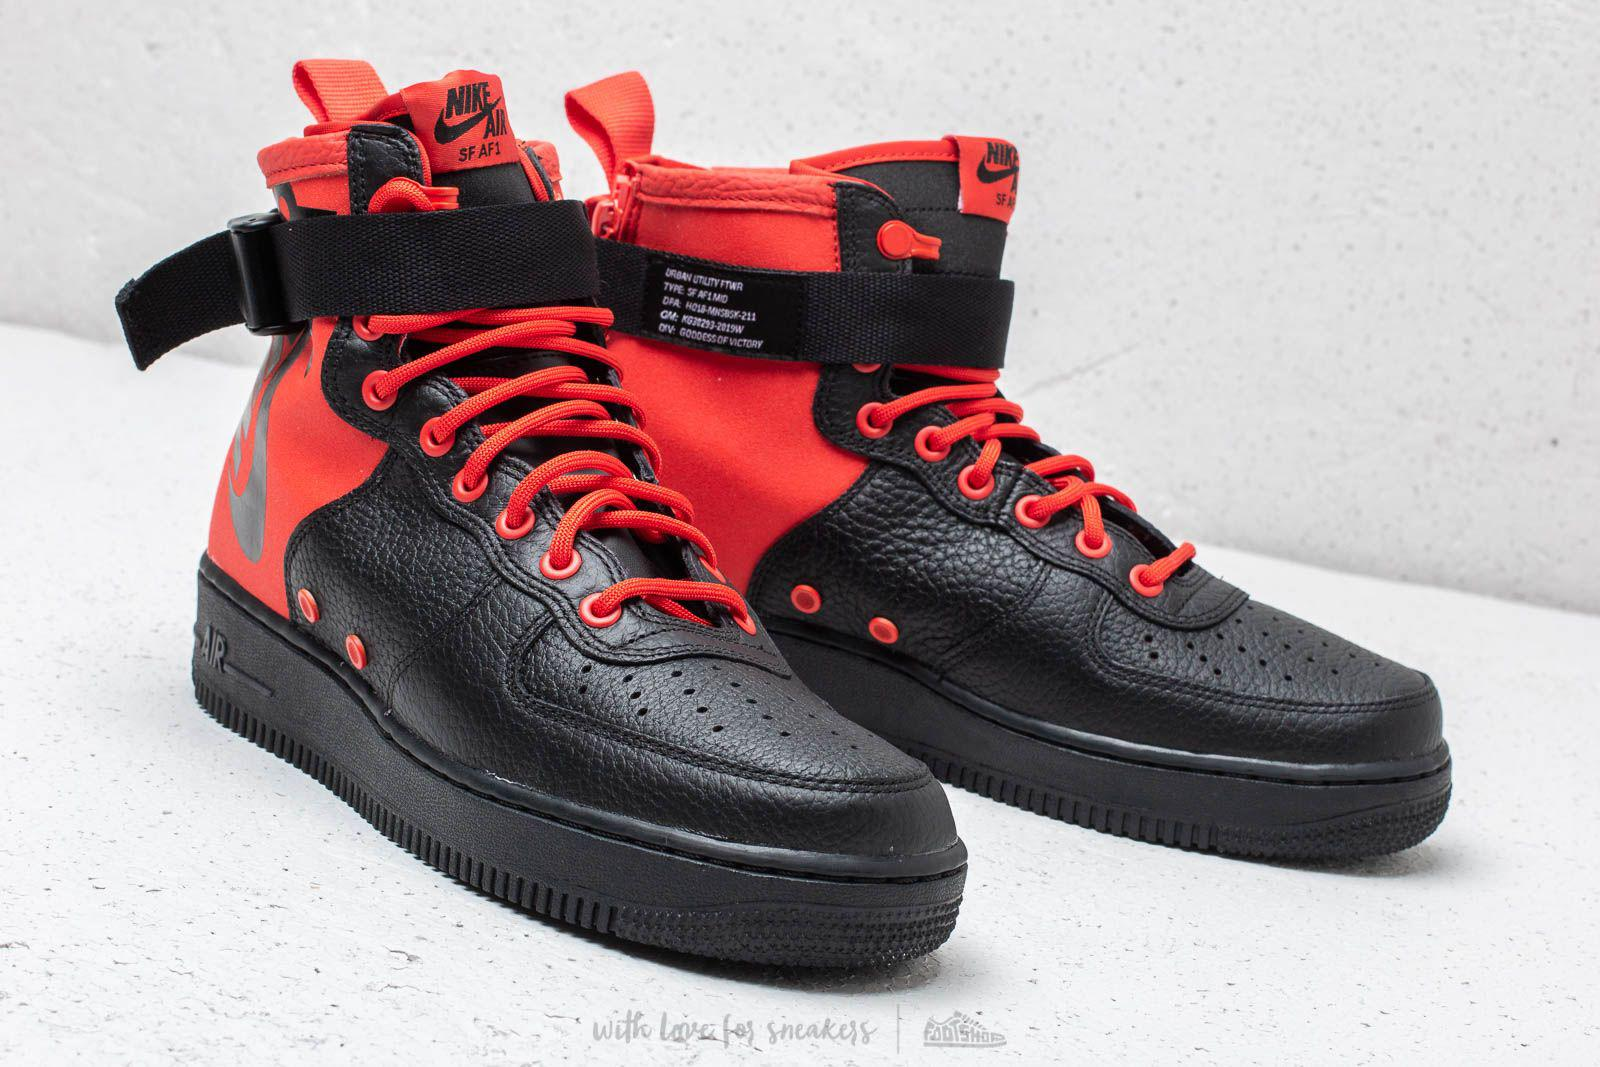 19502bb6b4ccf Lyst - Nike Sf Air Force 1 Mid Habanero Red  Habanero Red in Red for Men